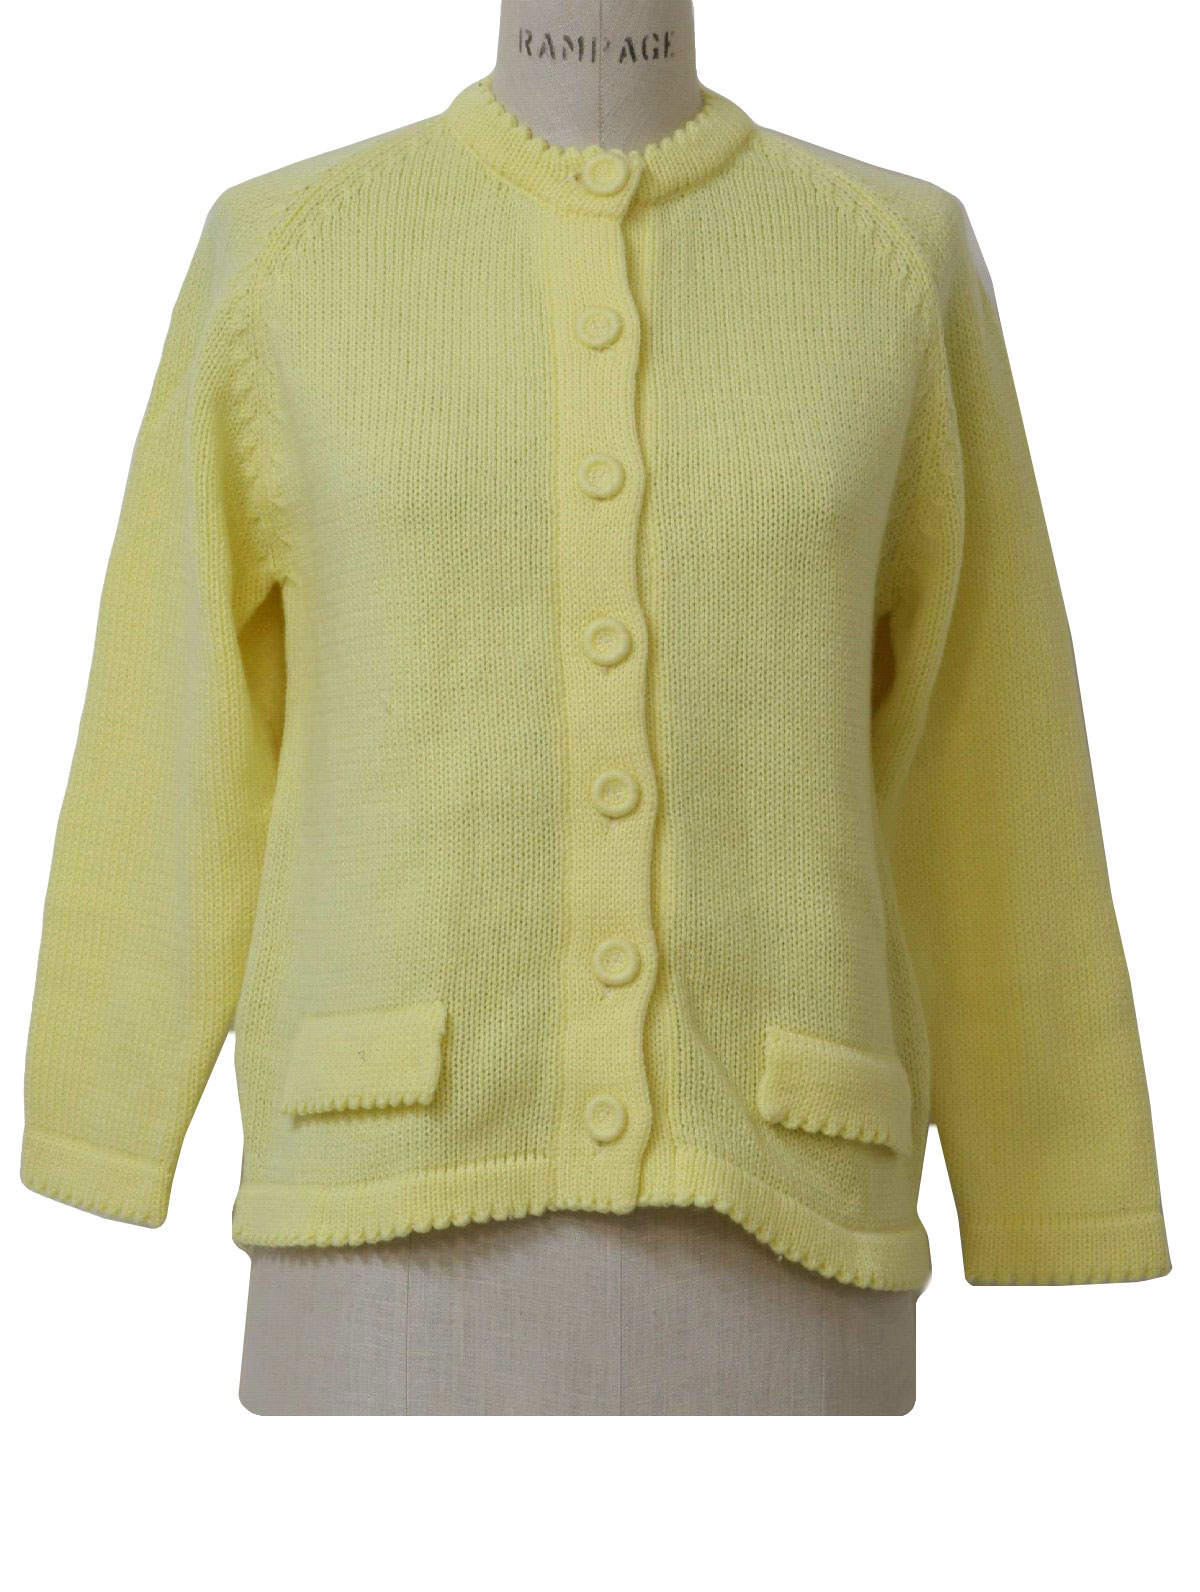 Retro Sixties Caridgan Sweater: 60s style (likely made in 70s ...